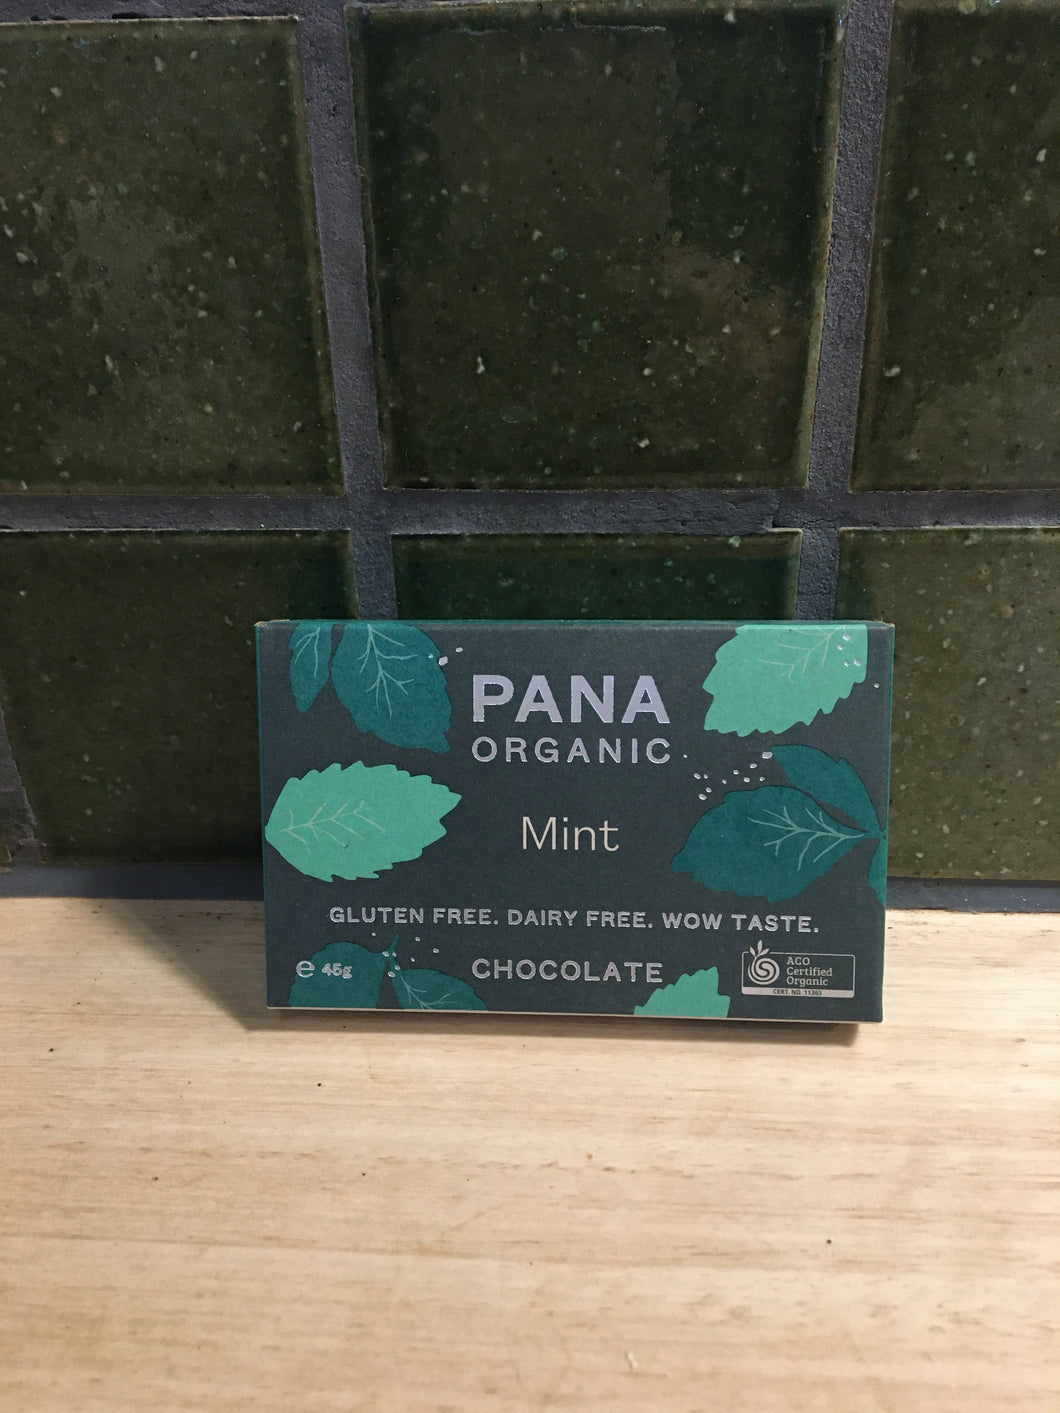 Pana Chocolate - Mint 45g